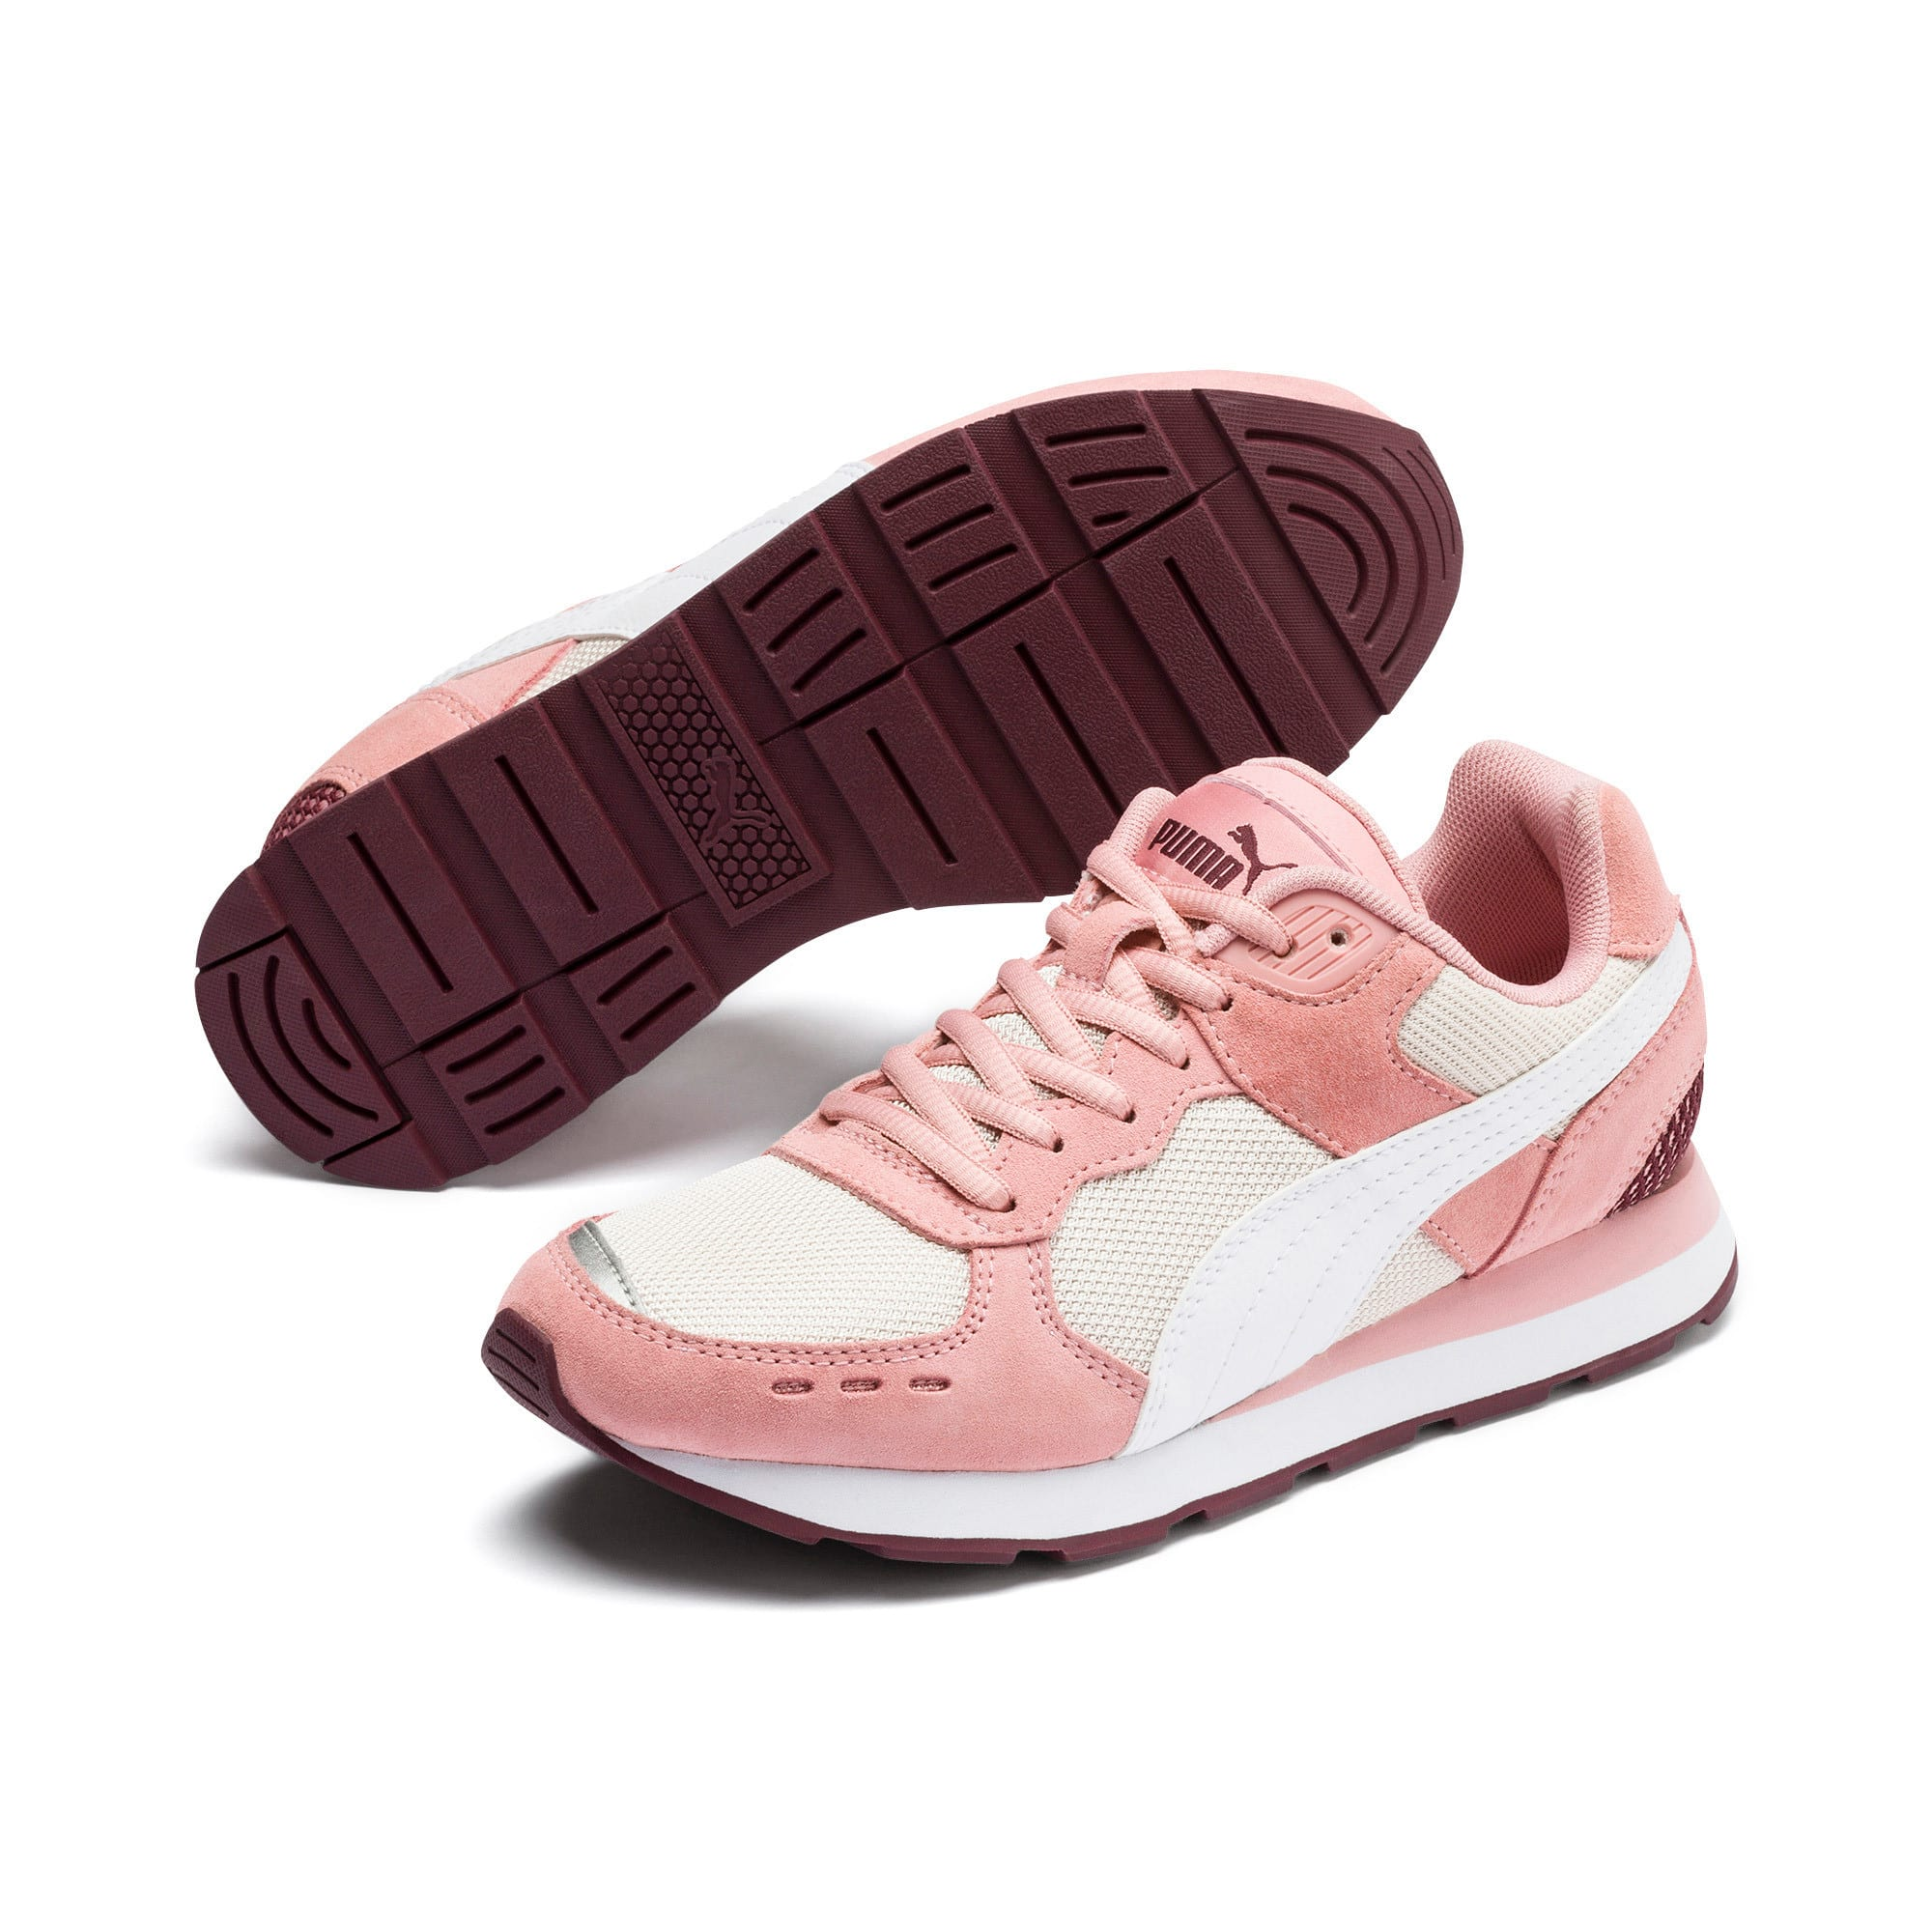 Thumbnail 2 of Vista Youth Trainers, Bridal Rose-Puma White, medium